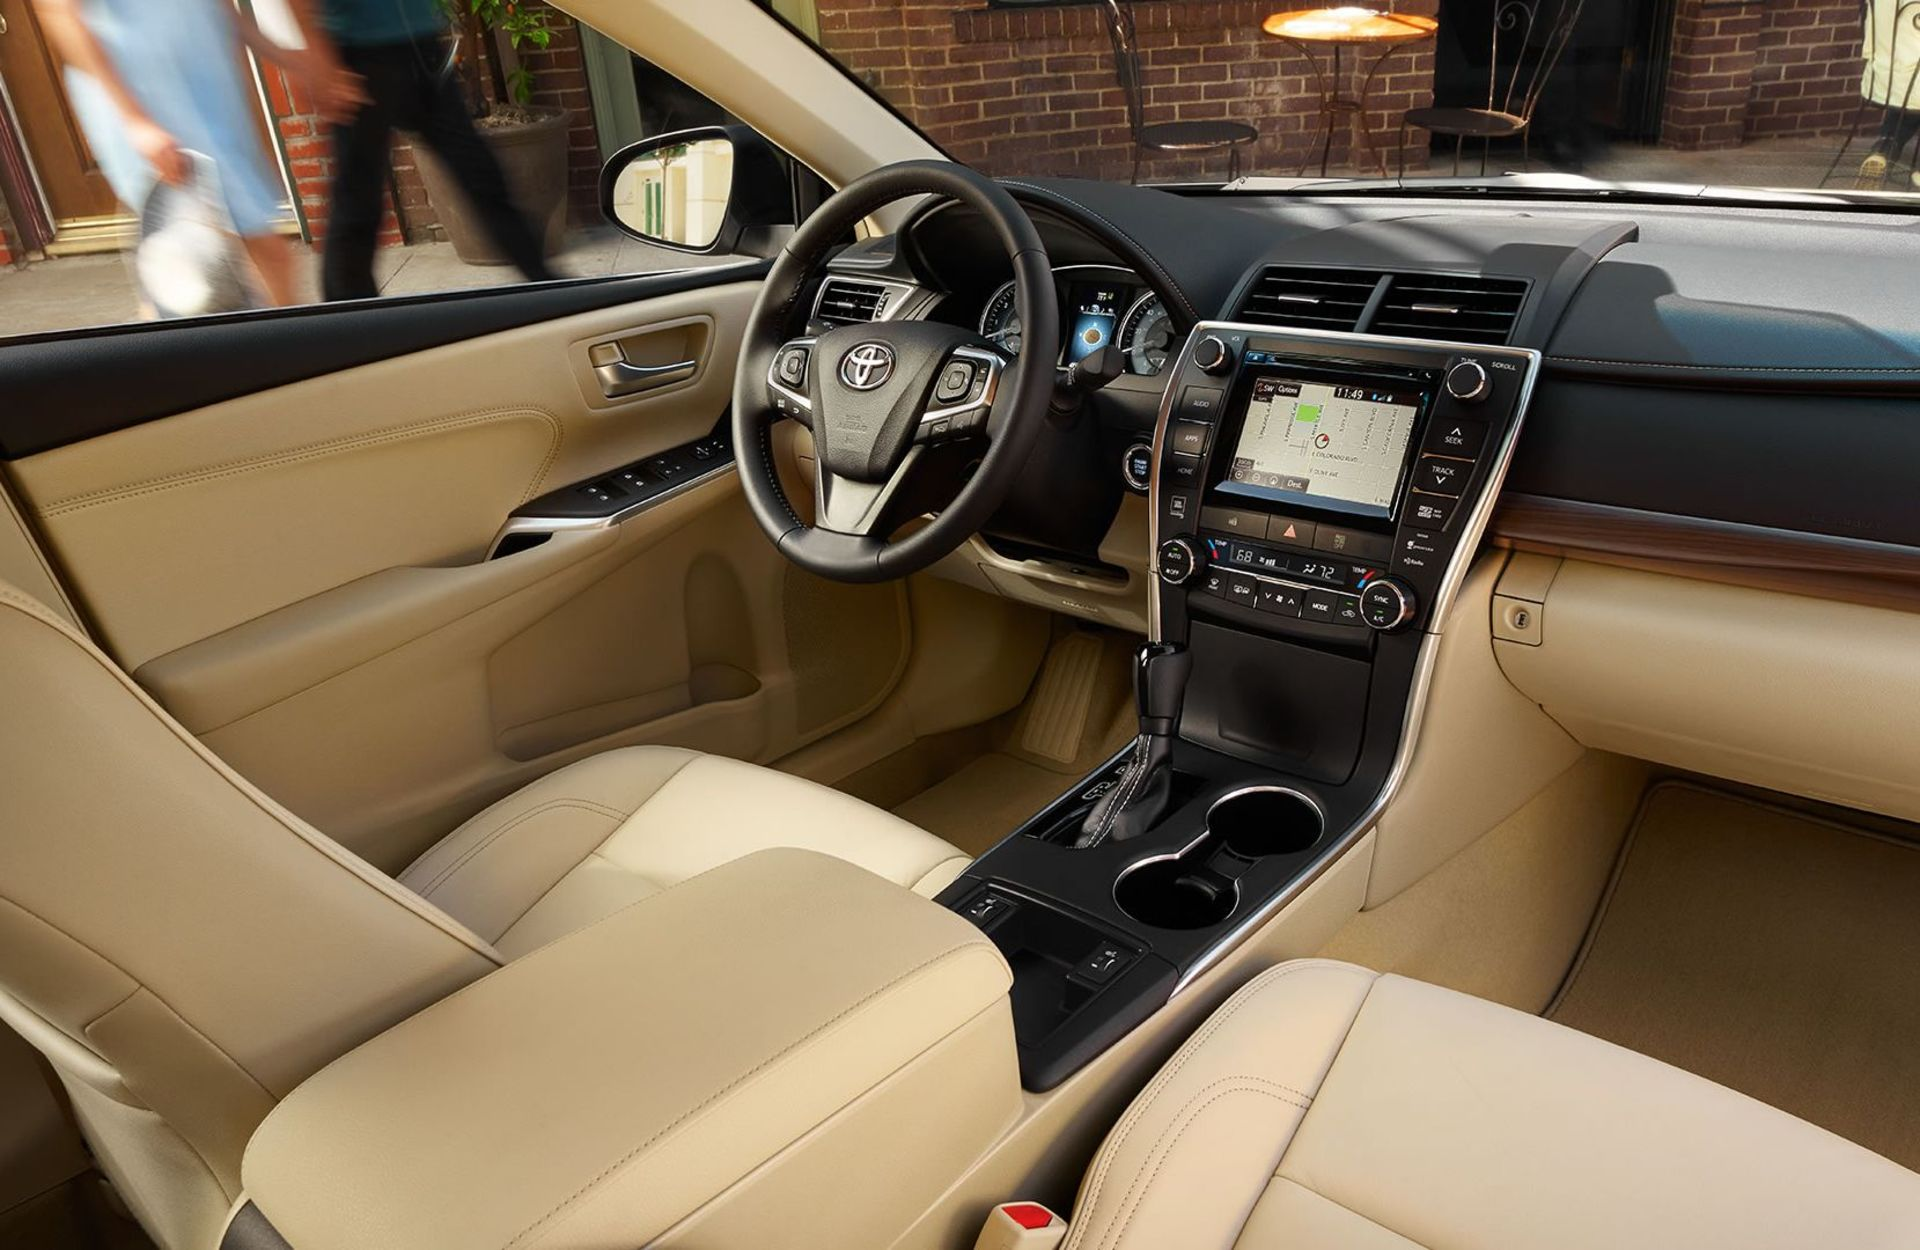 2017 Toyota Camry For Sale Near Greenwich Ct Of Fuel Filter Change Test Drive The Today You Can Find Us At Our Convenient Location 75 E Putnam Avenue In Cos Cob